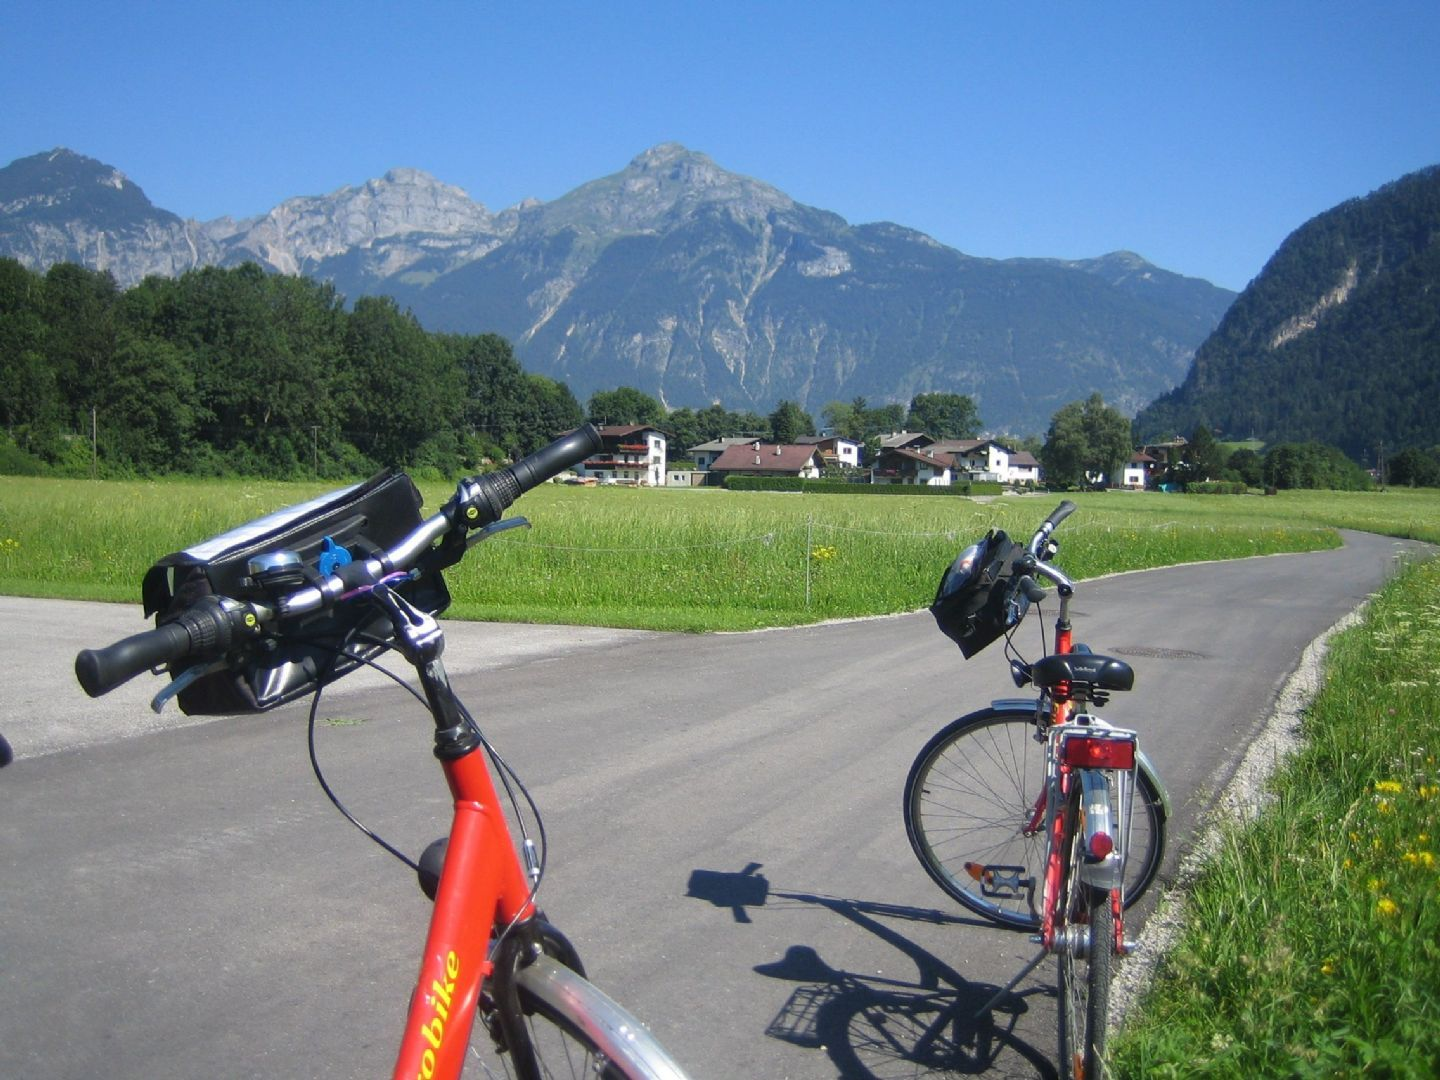 tyr 3.jpg - Austria - Tyrolean Valleys - Self-Guided Leisure Cycling Holiday - Leisure Cycling